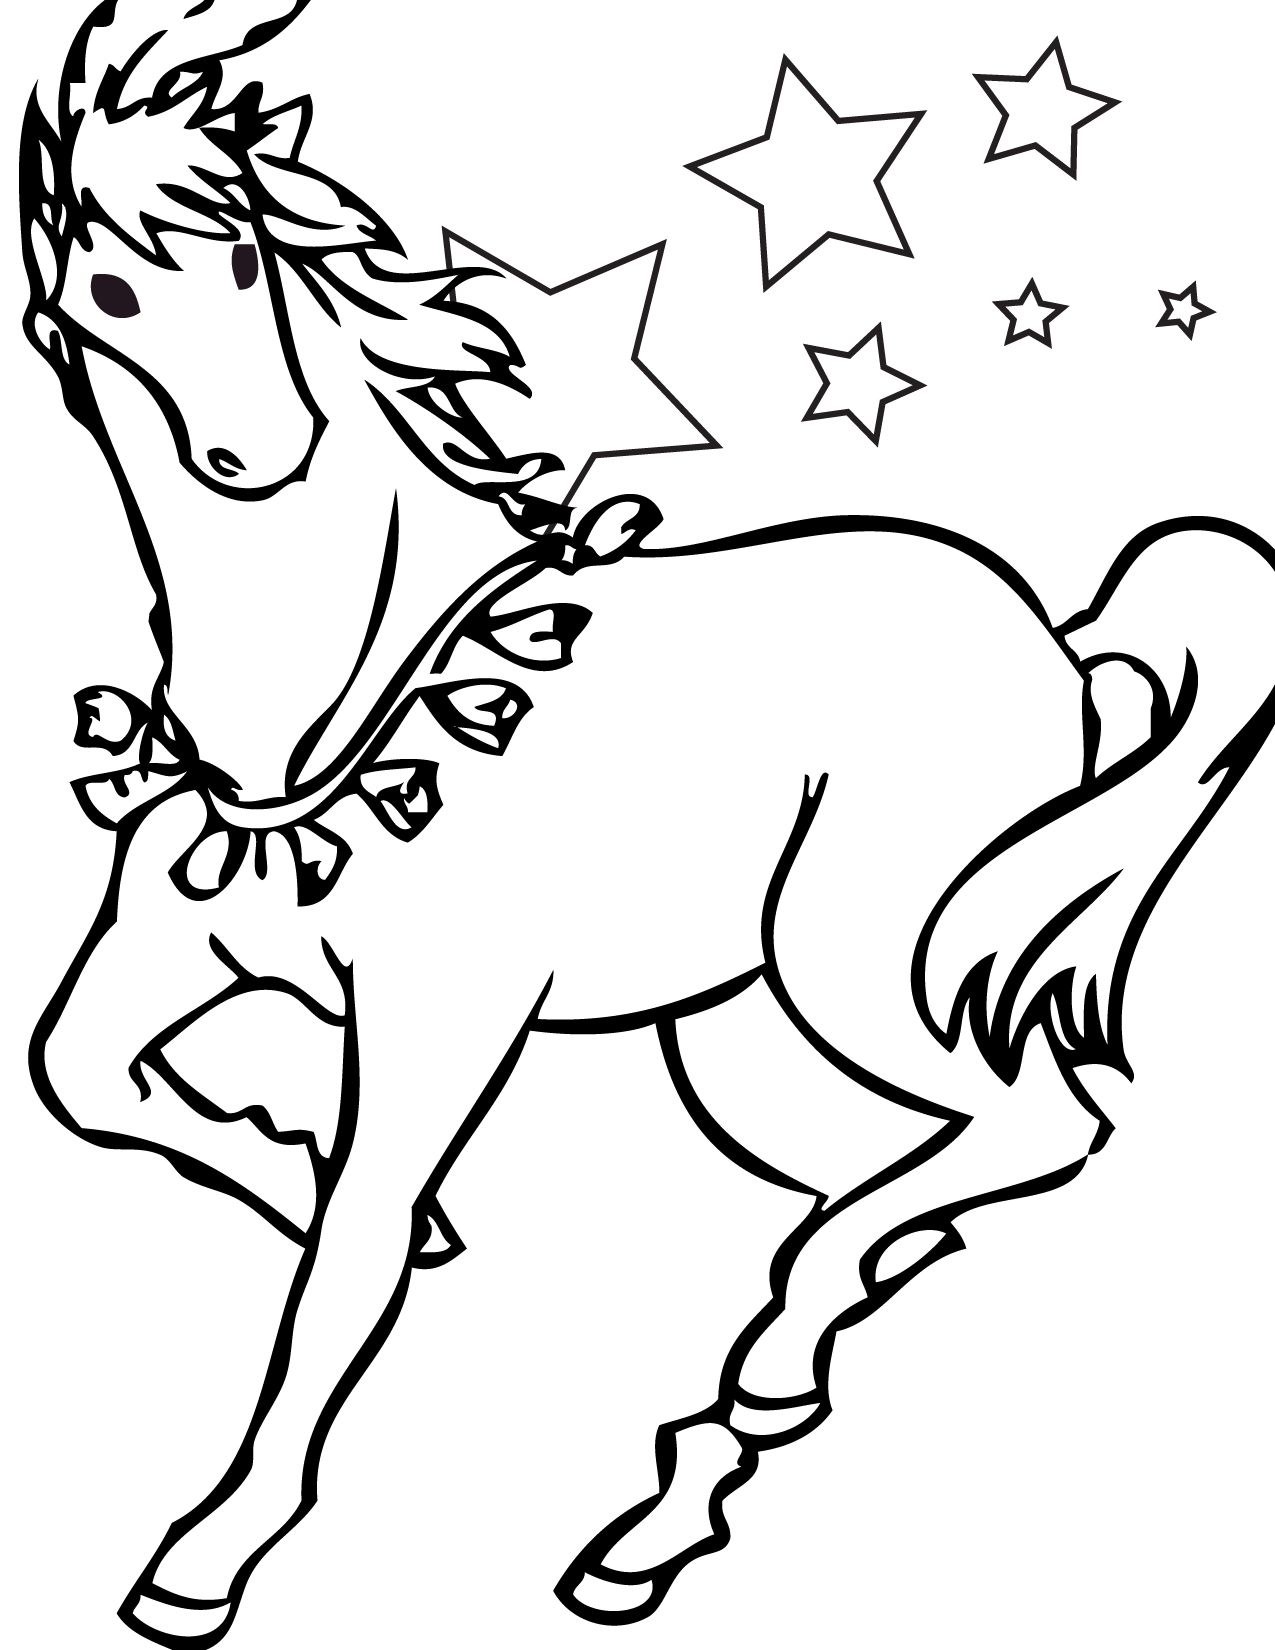 Printable pictures of horses print this page circus for Horse coloring pages printable free